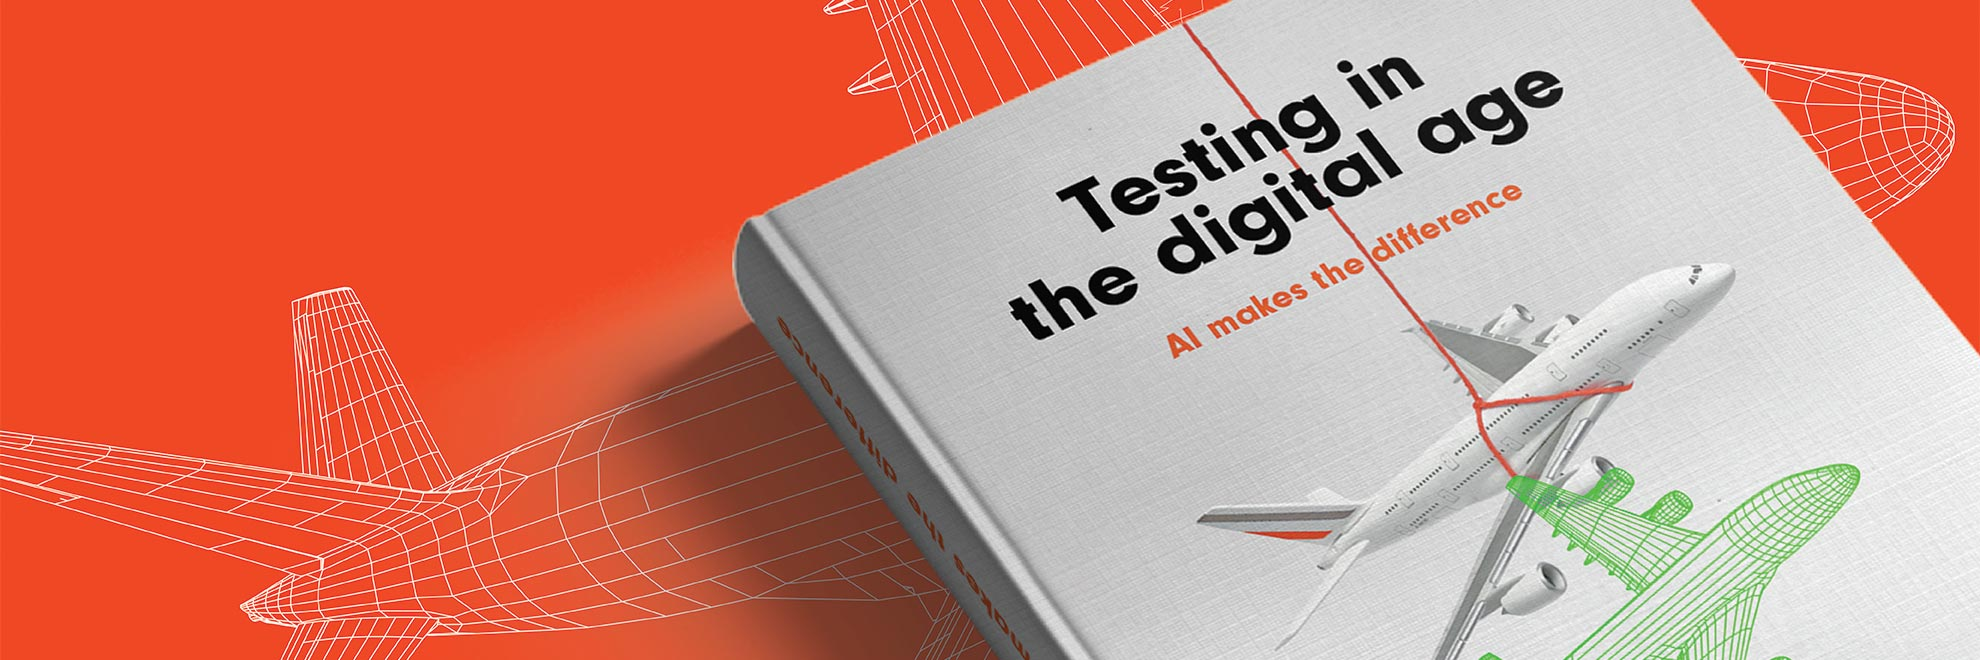 Testing in the Digital Age - AI makes a difference